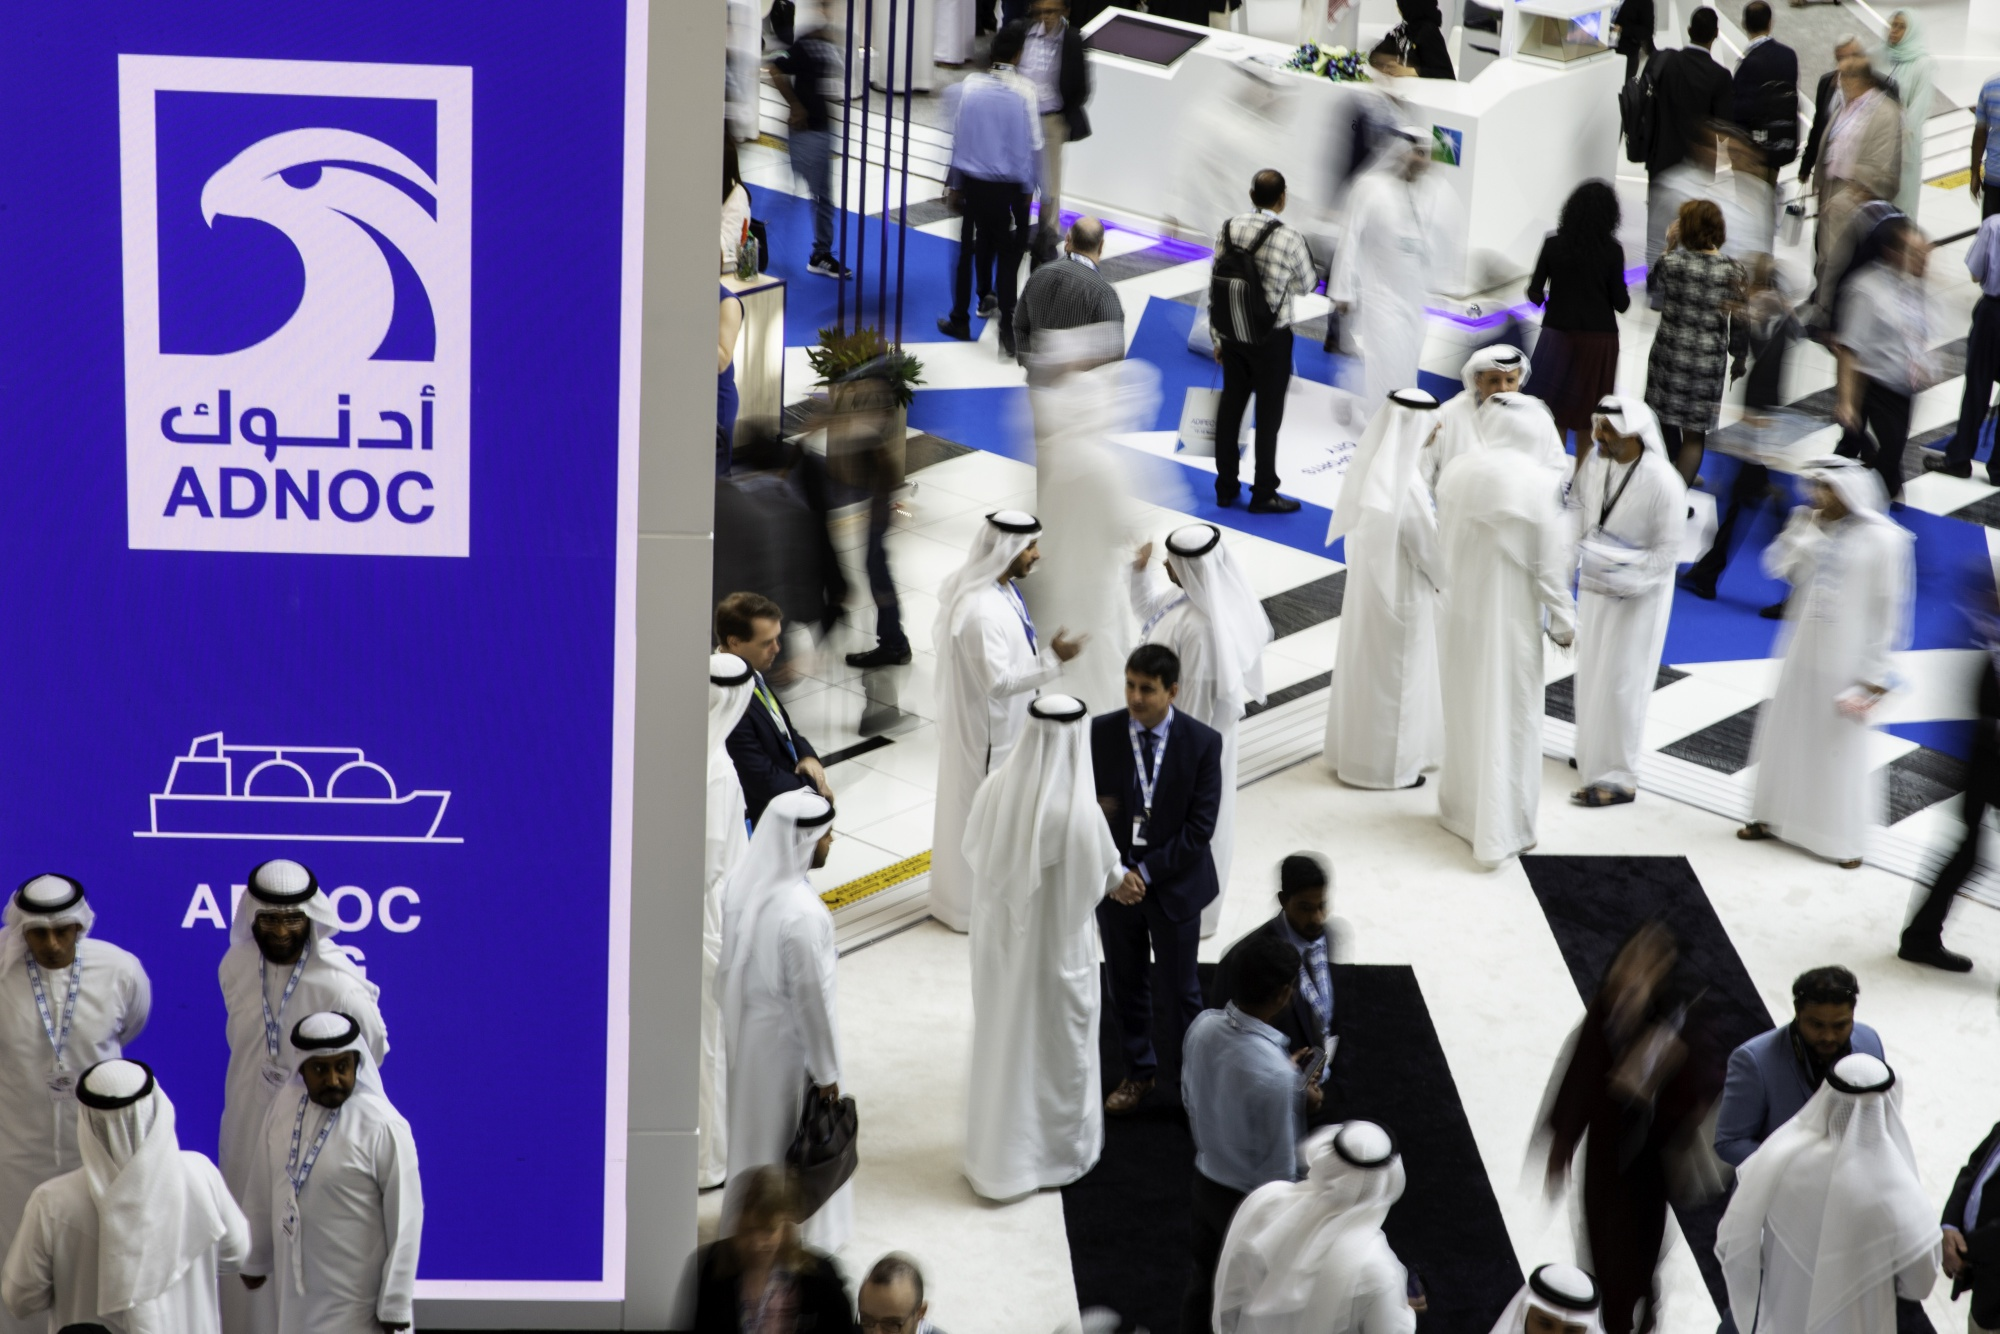 Delegates pass the Abu Dhabi National Oil Co. (ADNOC) display during the Abu Dhabi International Petroleum Exhibition & Conference (ADIPEC) in Abu Dhabi, United Arab Emirates, on Tuesday, Nov. 13, 2018. OPEC's secretary-general, energy ministers from Saudi Arabia to Russia, CEOs at oil majors from Total SA, BP Plc and Eni SpA, and officials from Middle Eastern energy giants such as Abu Dhabi's Adnoc have gathered to sign deals and discuss oil, gas, refining and petrochemical issues. Photographer: Christopher Pike/Bloomberg